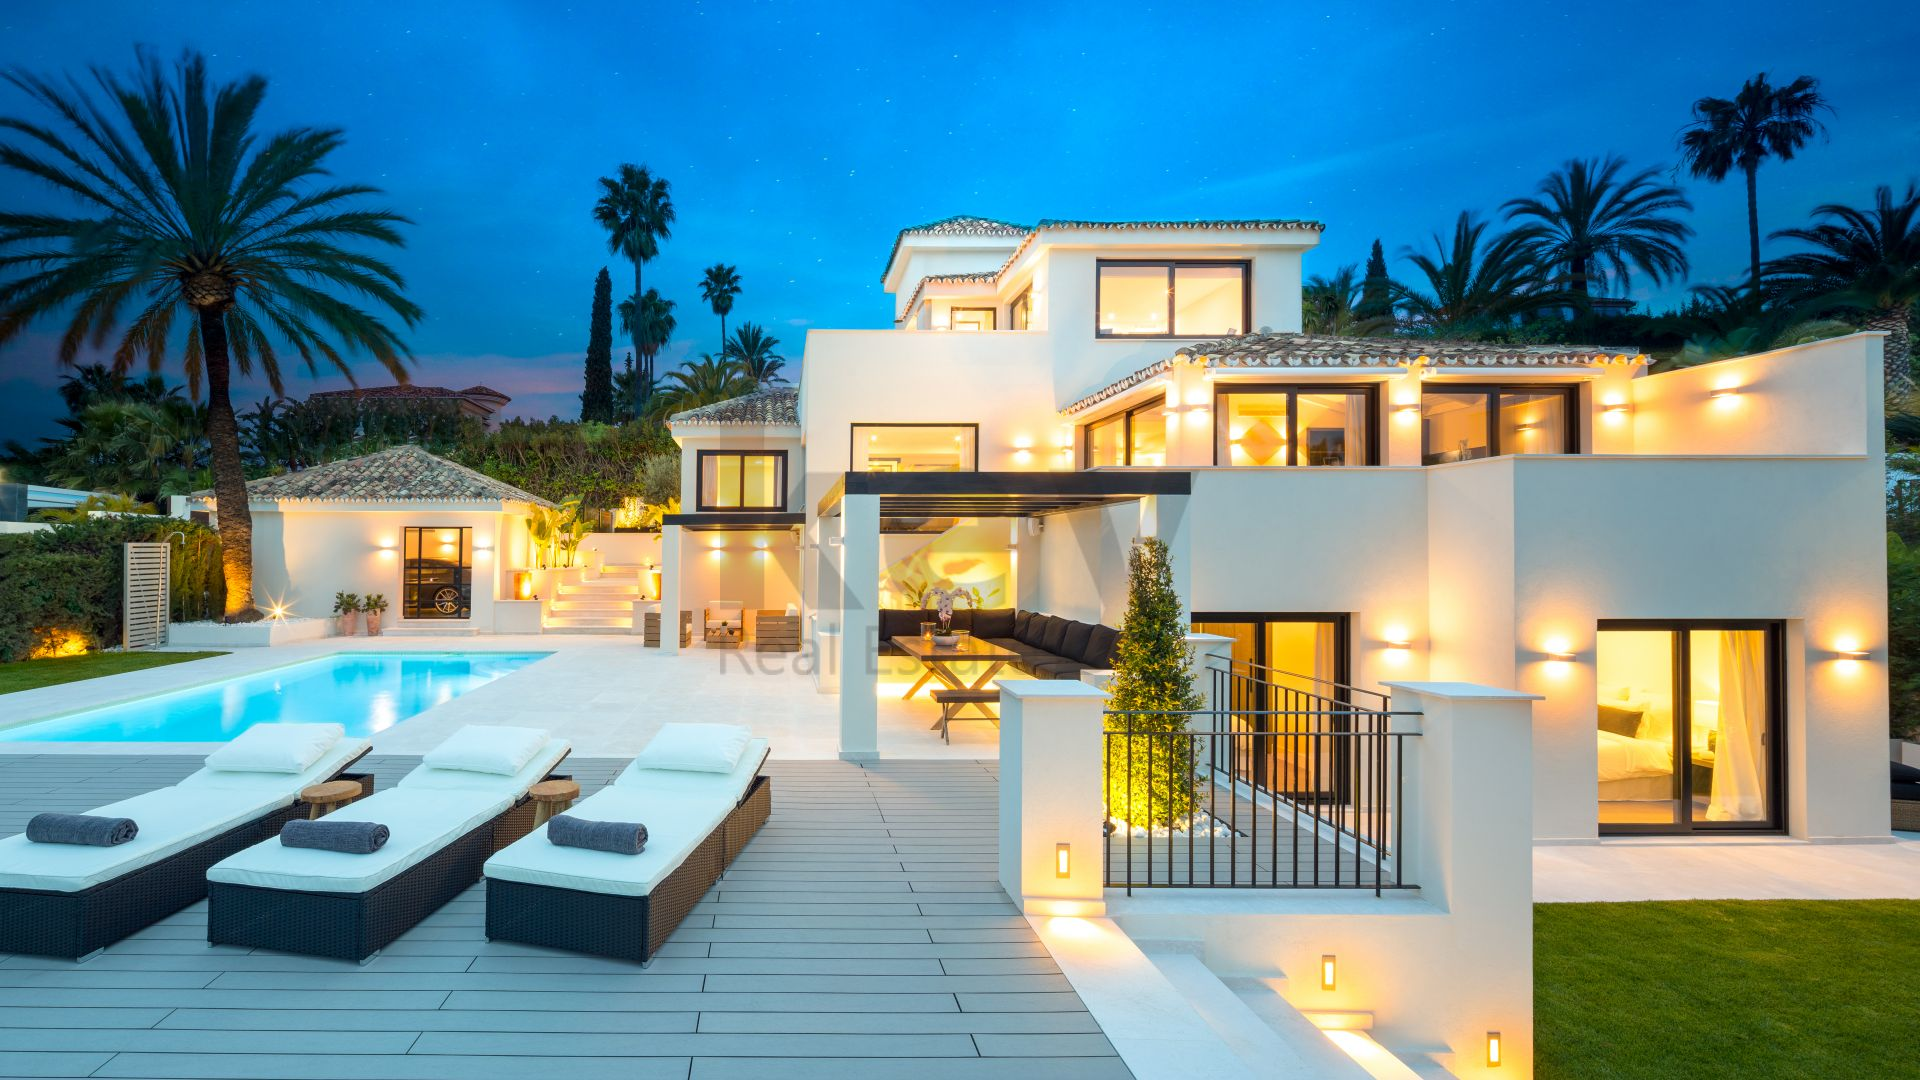 Marvellous villa for sale in Los Naranjos Hill Club, Marbella